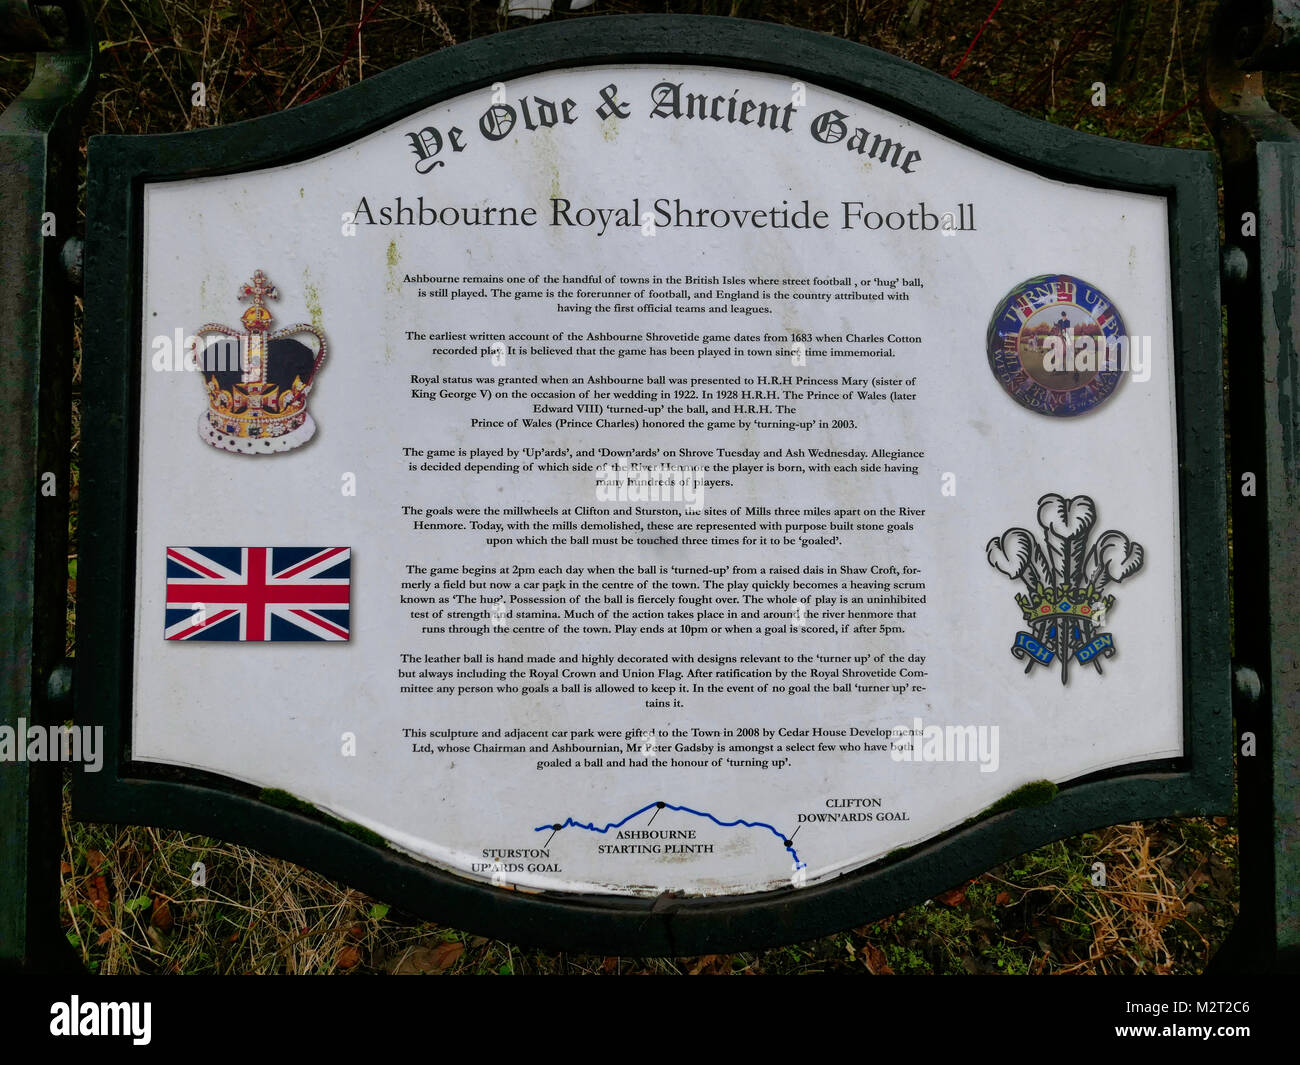 Ashbourne, UK. 8th February, 2018. Preparations start for the Ashbourne Royal Shrovetide Football match which takes - Stock Image